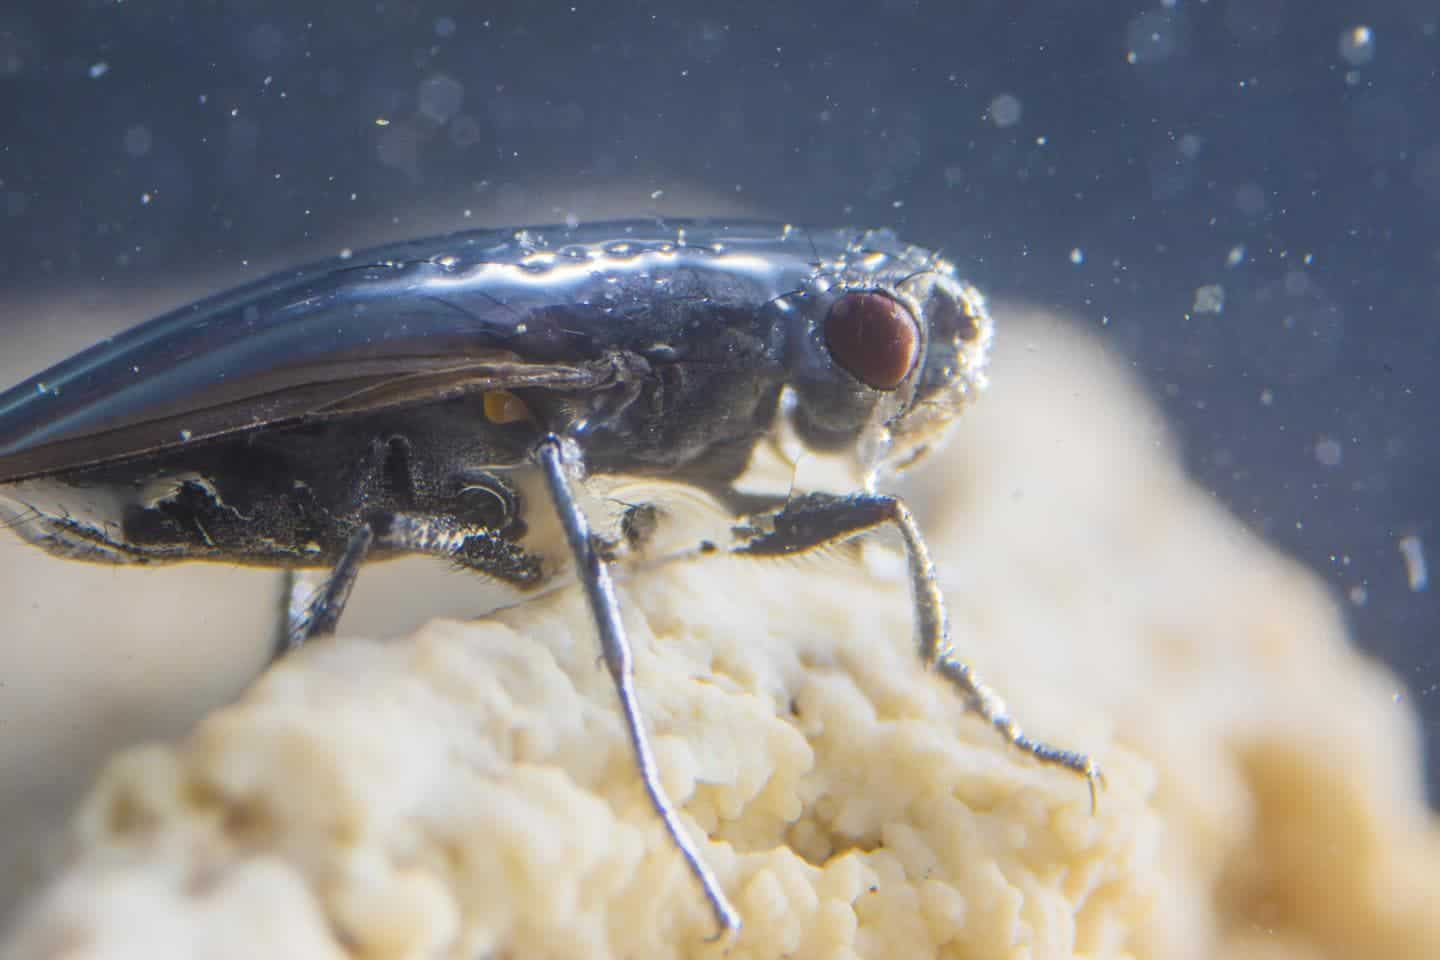 Scientists Discovered Diving Flies: They Can Go Underwater Without Getting Wet